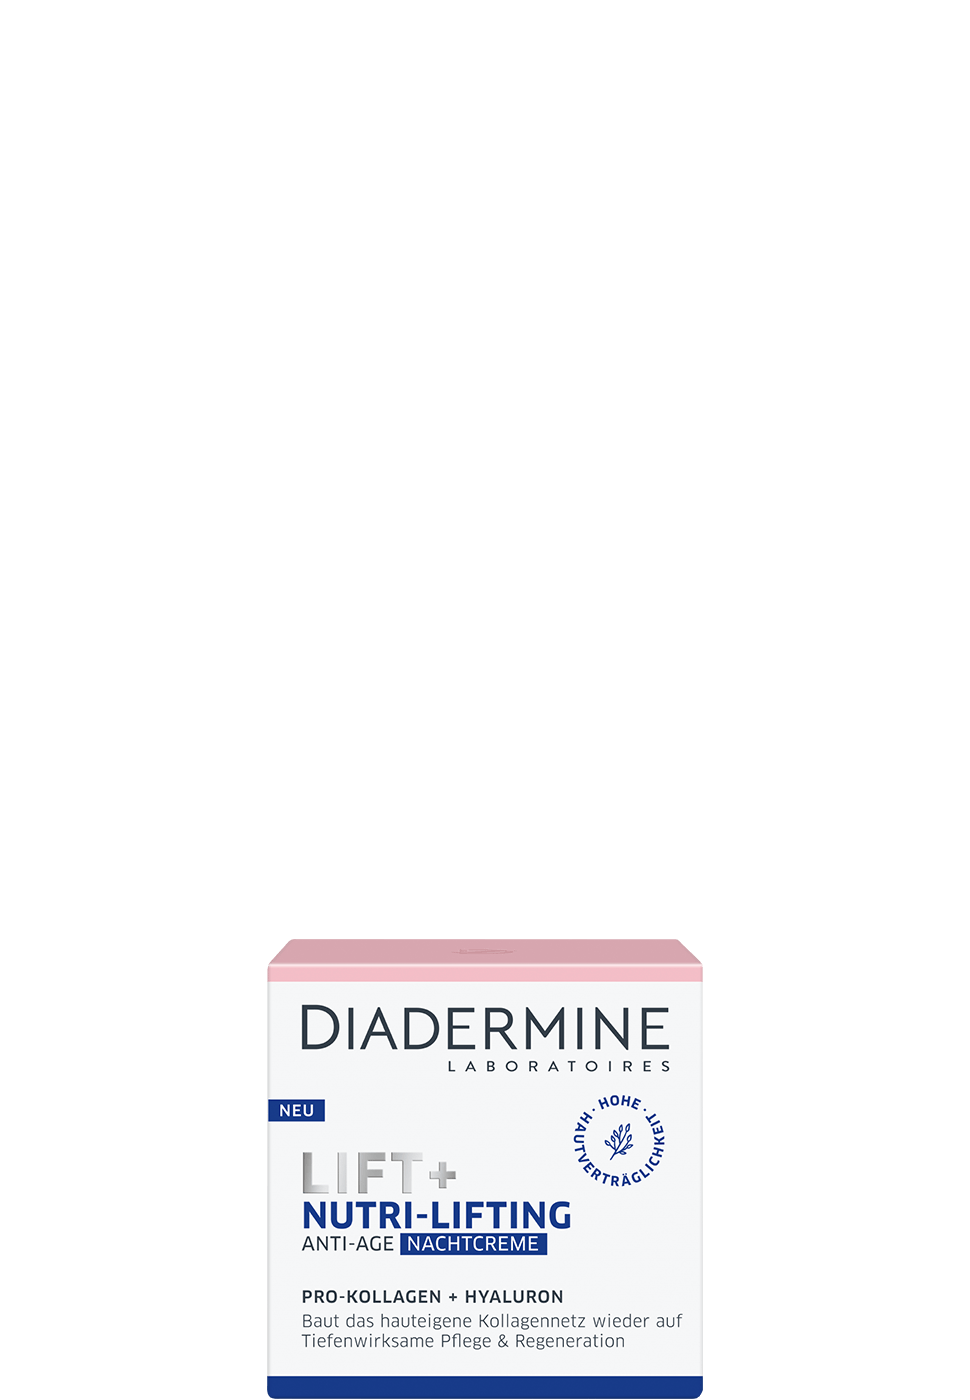 diaatrmine_at_lift_plus_nutri_lifting_nachtcreme_970x1400